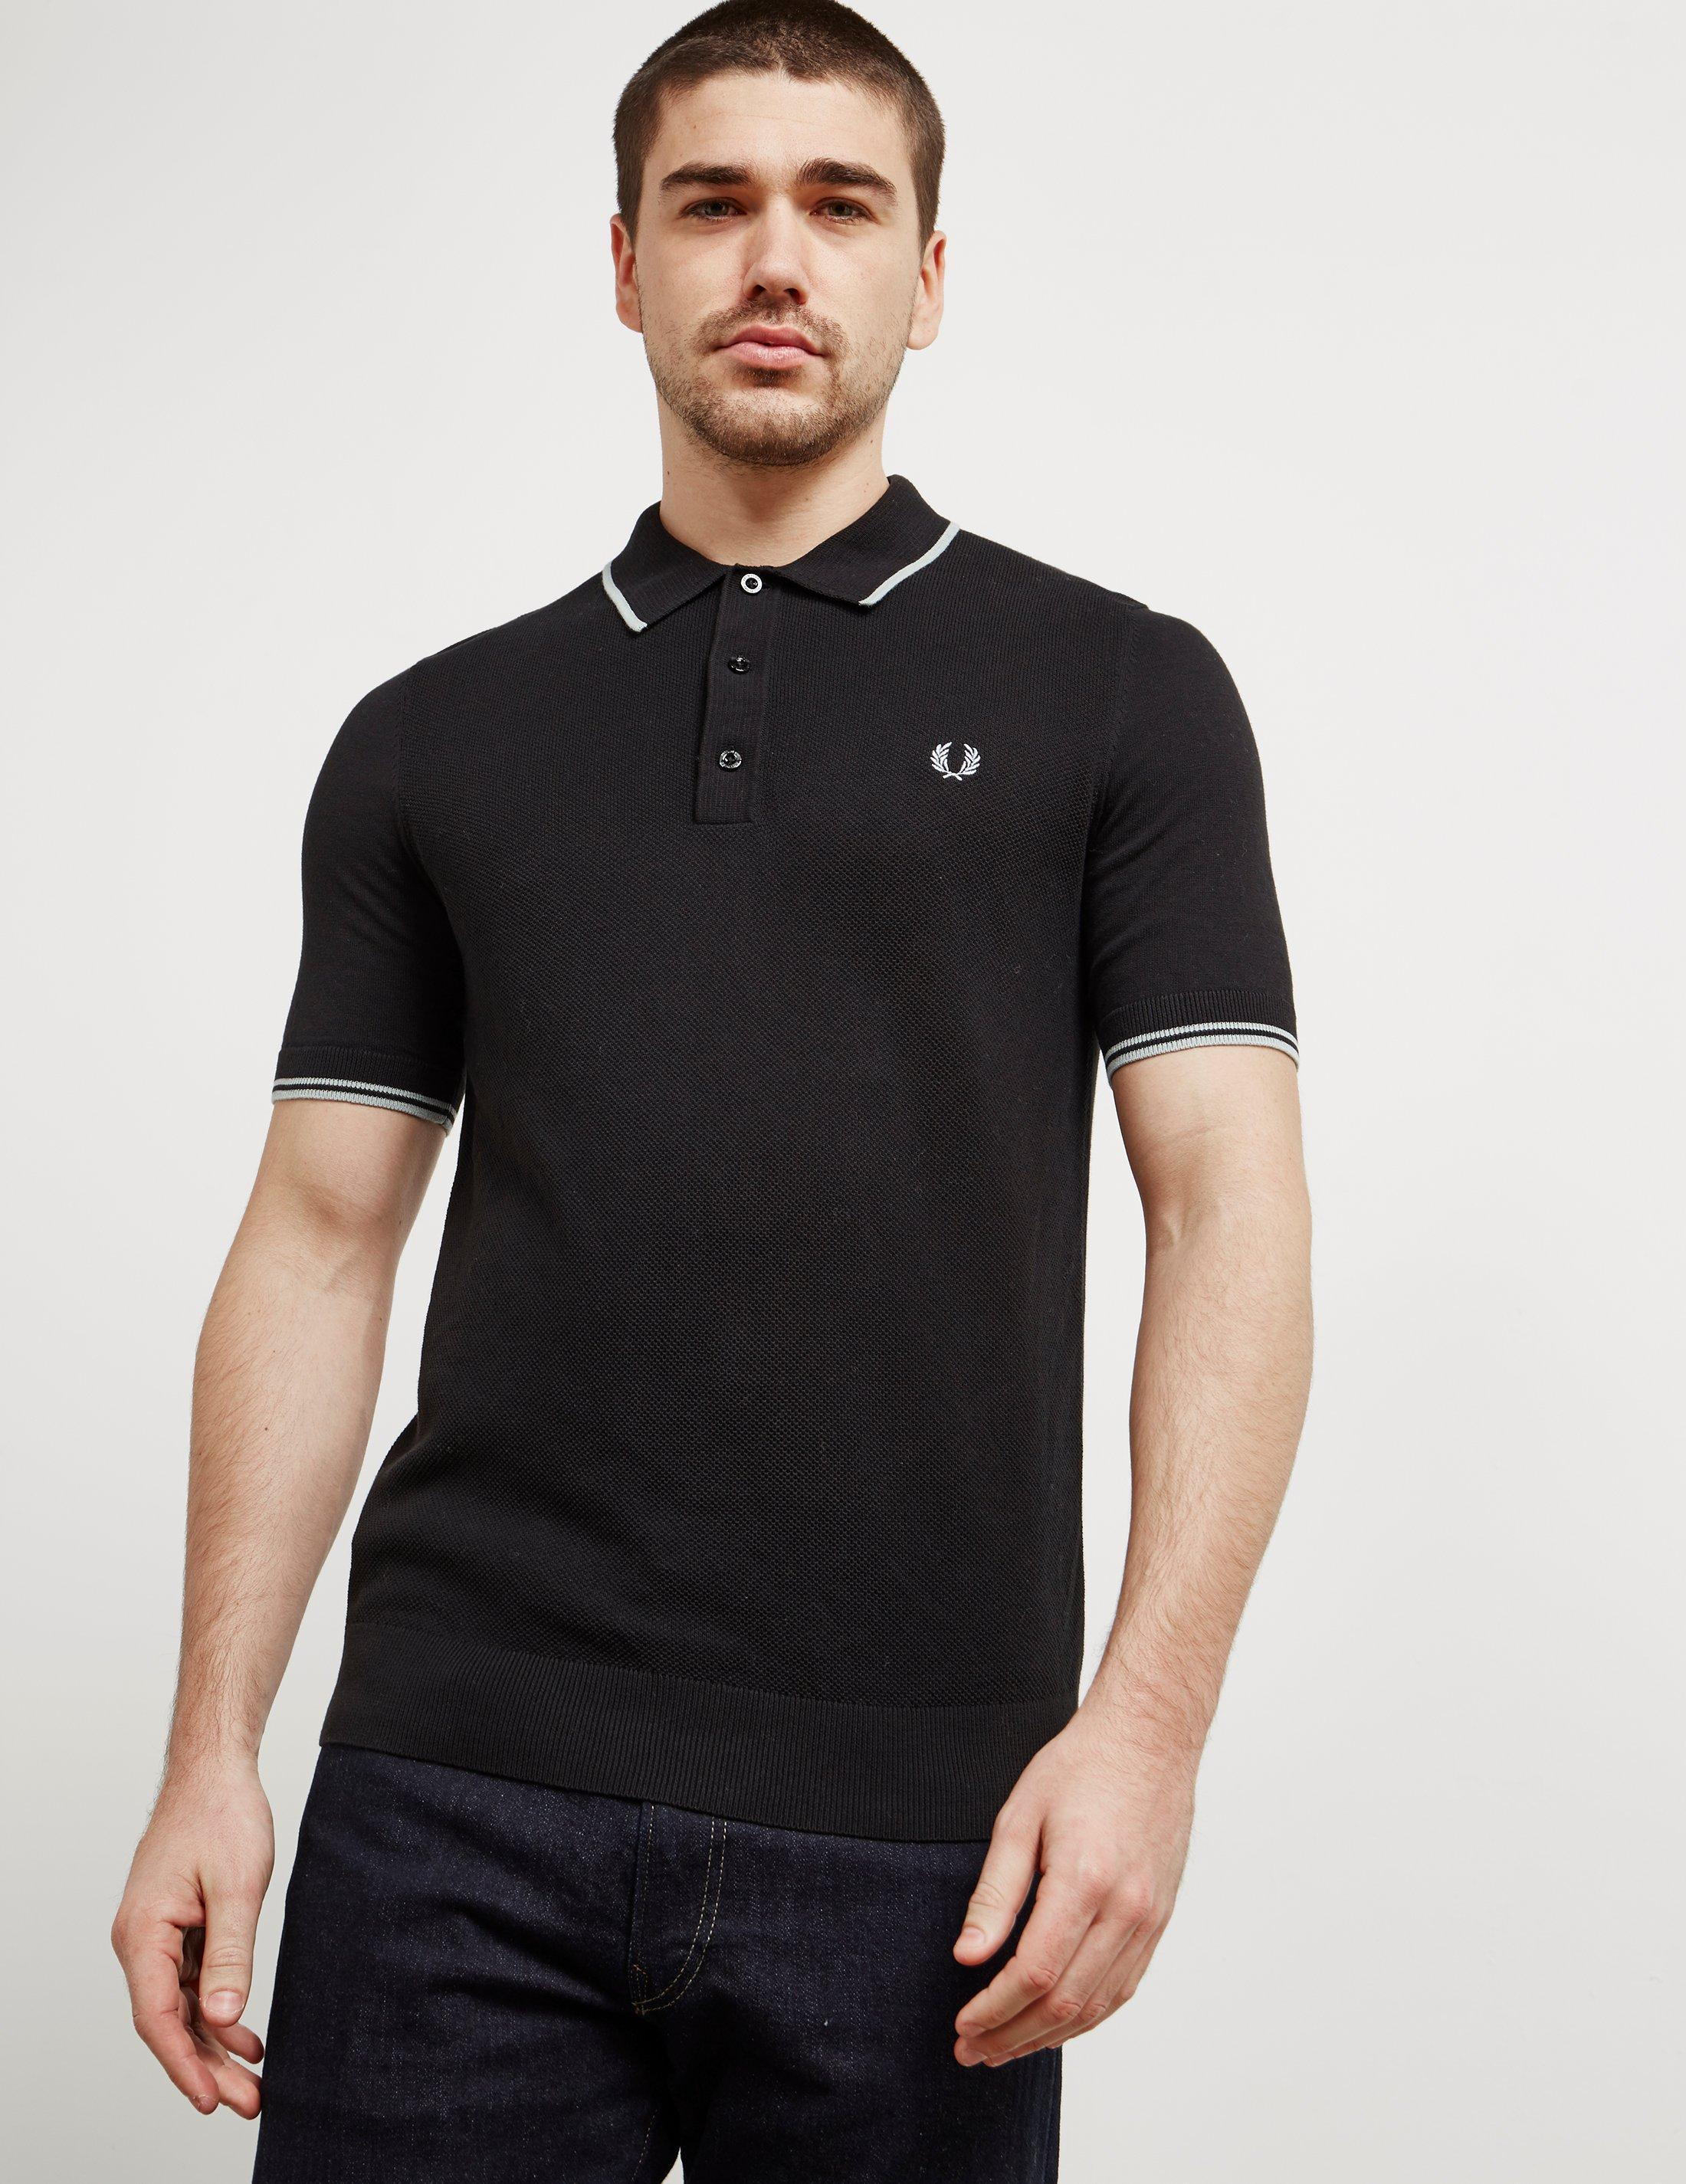 Lyst fred perry mens short sleeve knitted polo shirt for Fred perry mens shirts sale